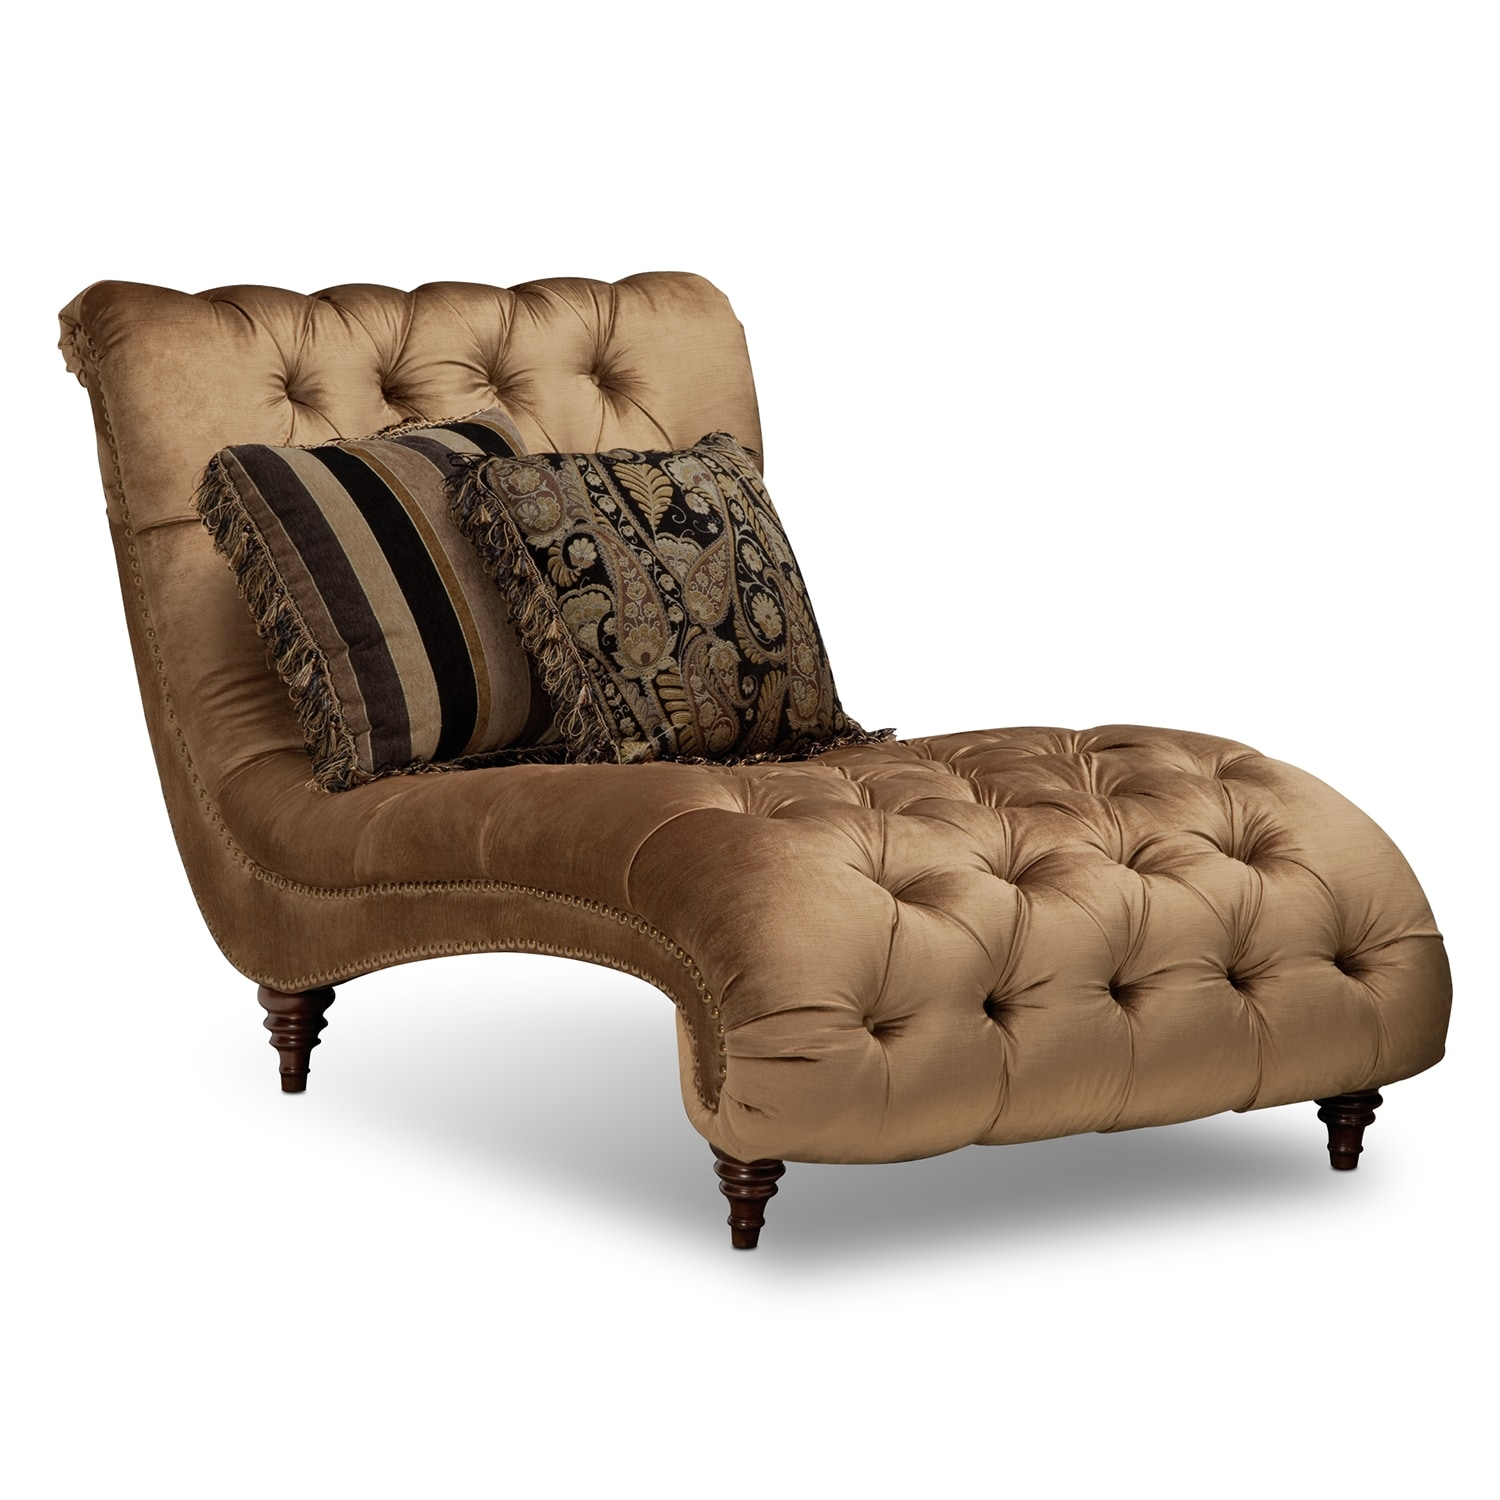 Chaise Lounges Value City